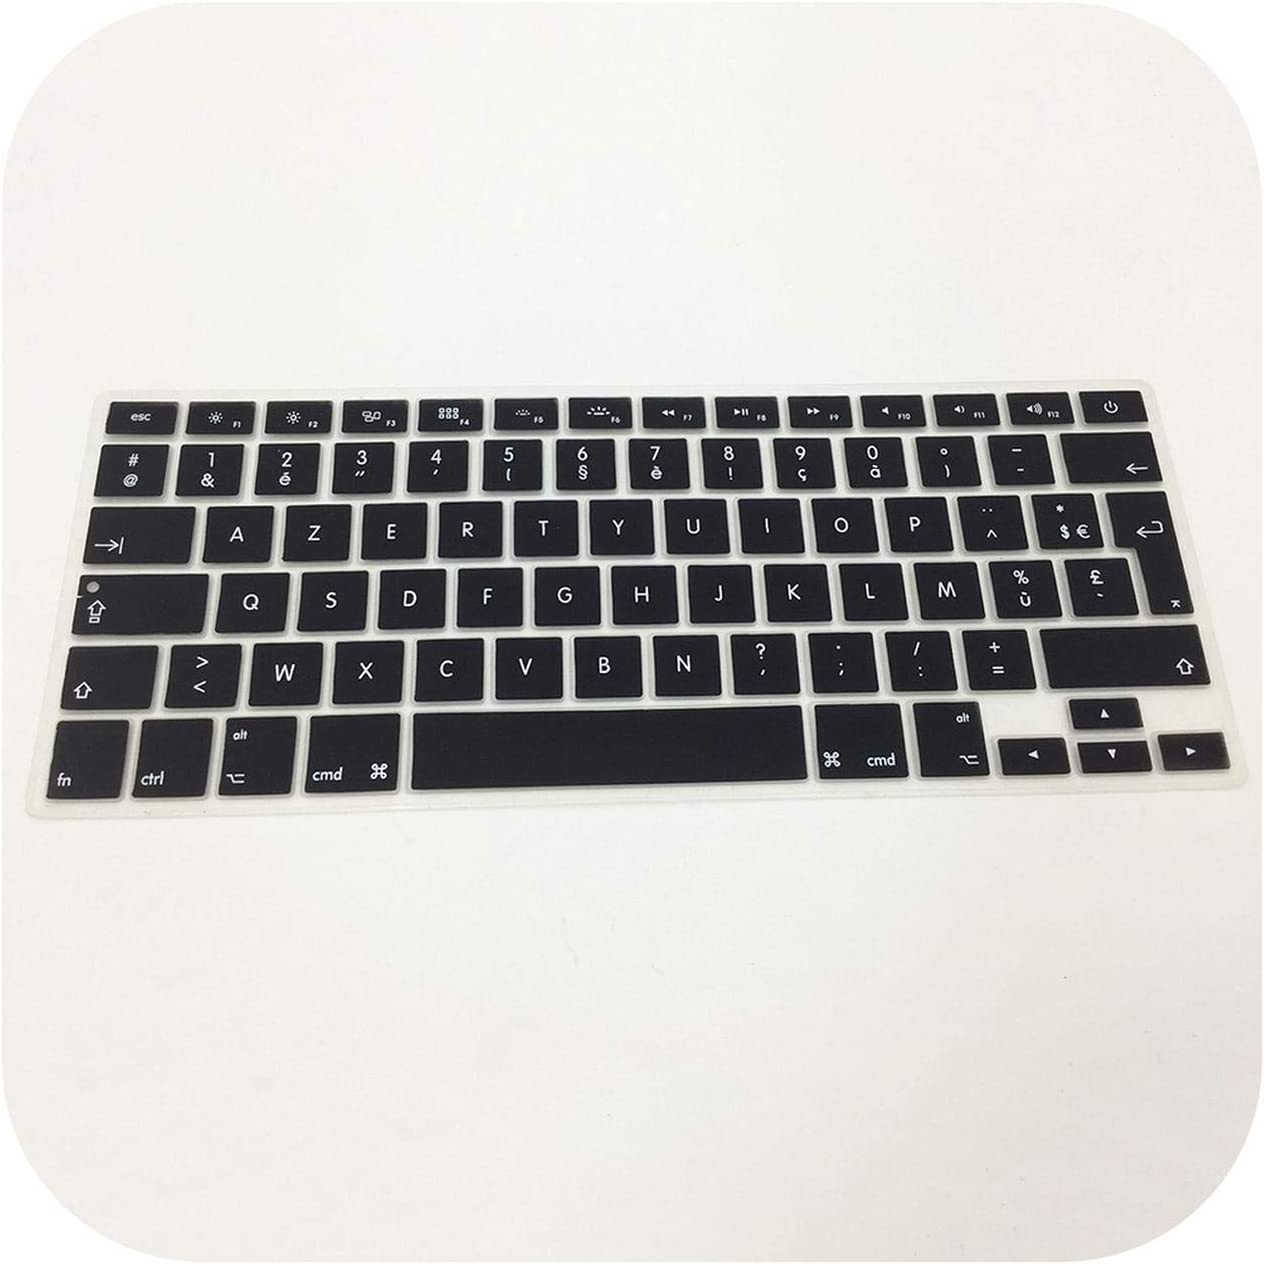 EU//UK//US Silicon Keyboard Cover Transparent Clear Protector Multi Language for MacBook Air Pro Retina 13 15 17inch-French UK EU Vision